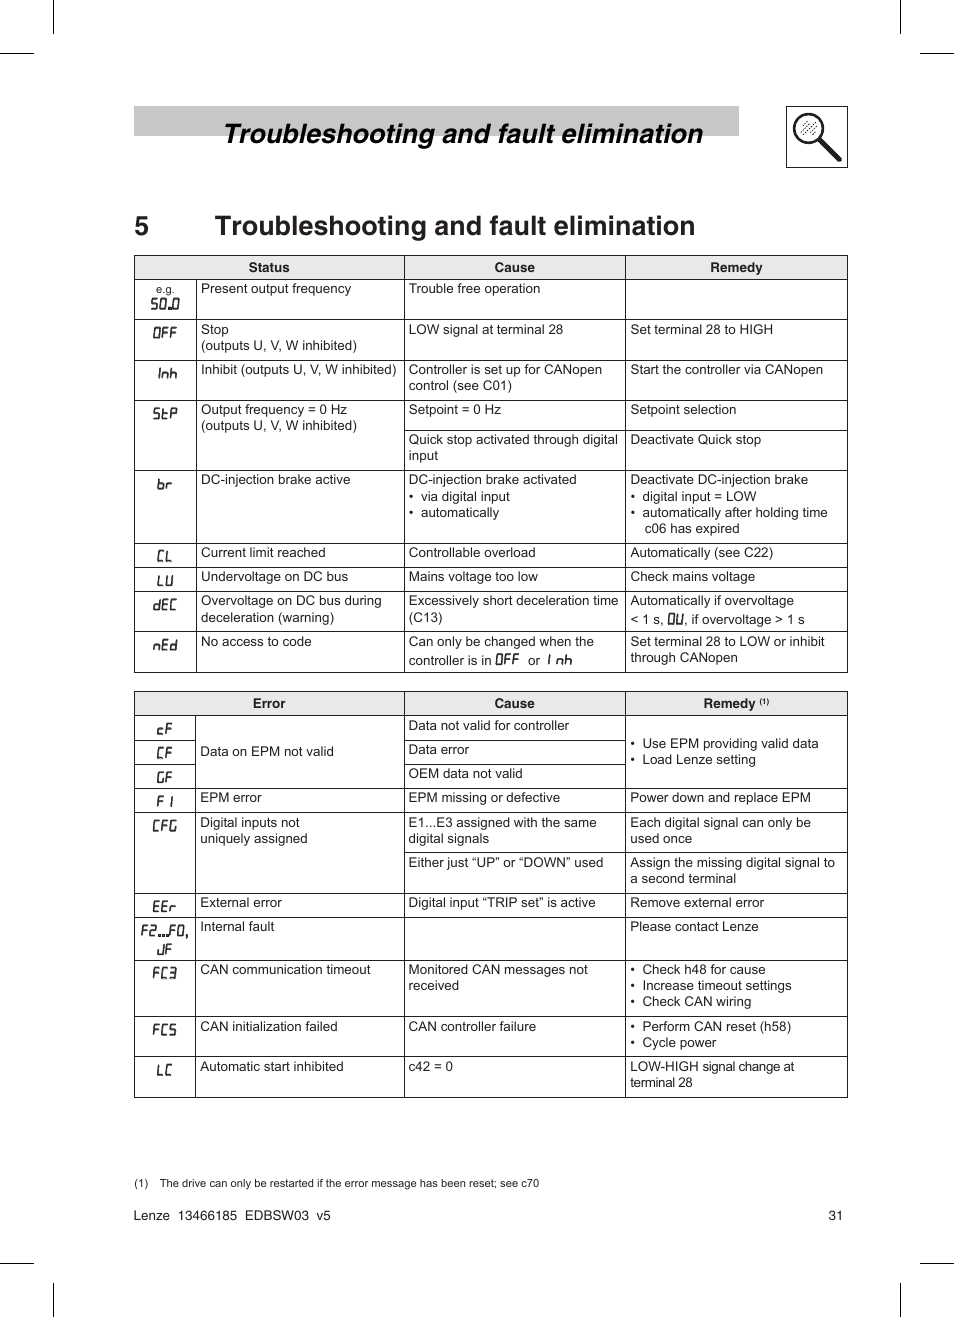 5troubleshooting And Fault Elimination Troubleshooting